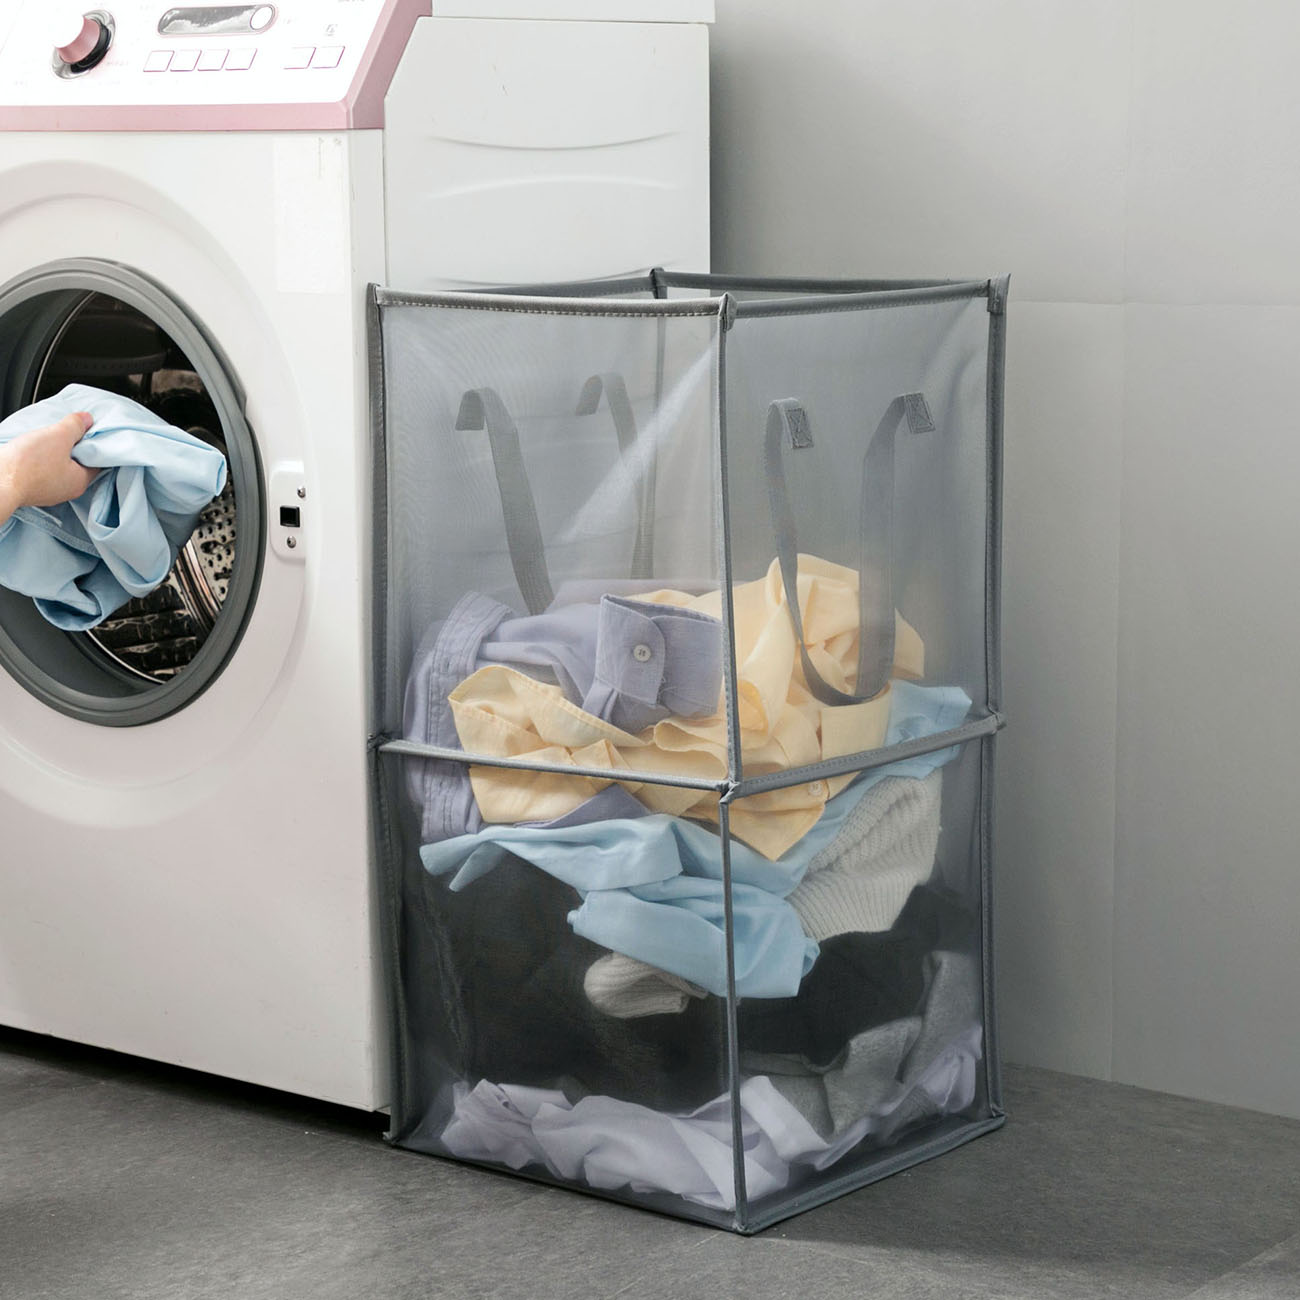 Foldable Clothes Storage Baskets Mesh Washing Dirty Clothes Laundry Basket Portable Sundries Organizer Toy Container